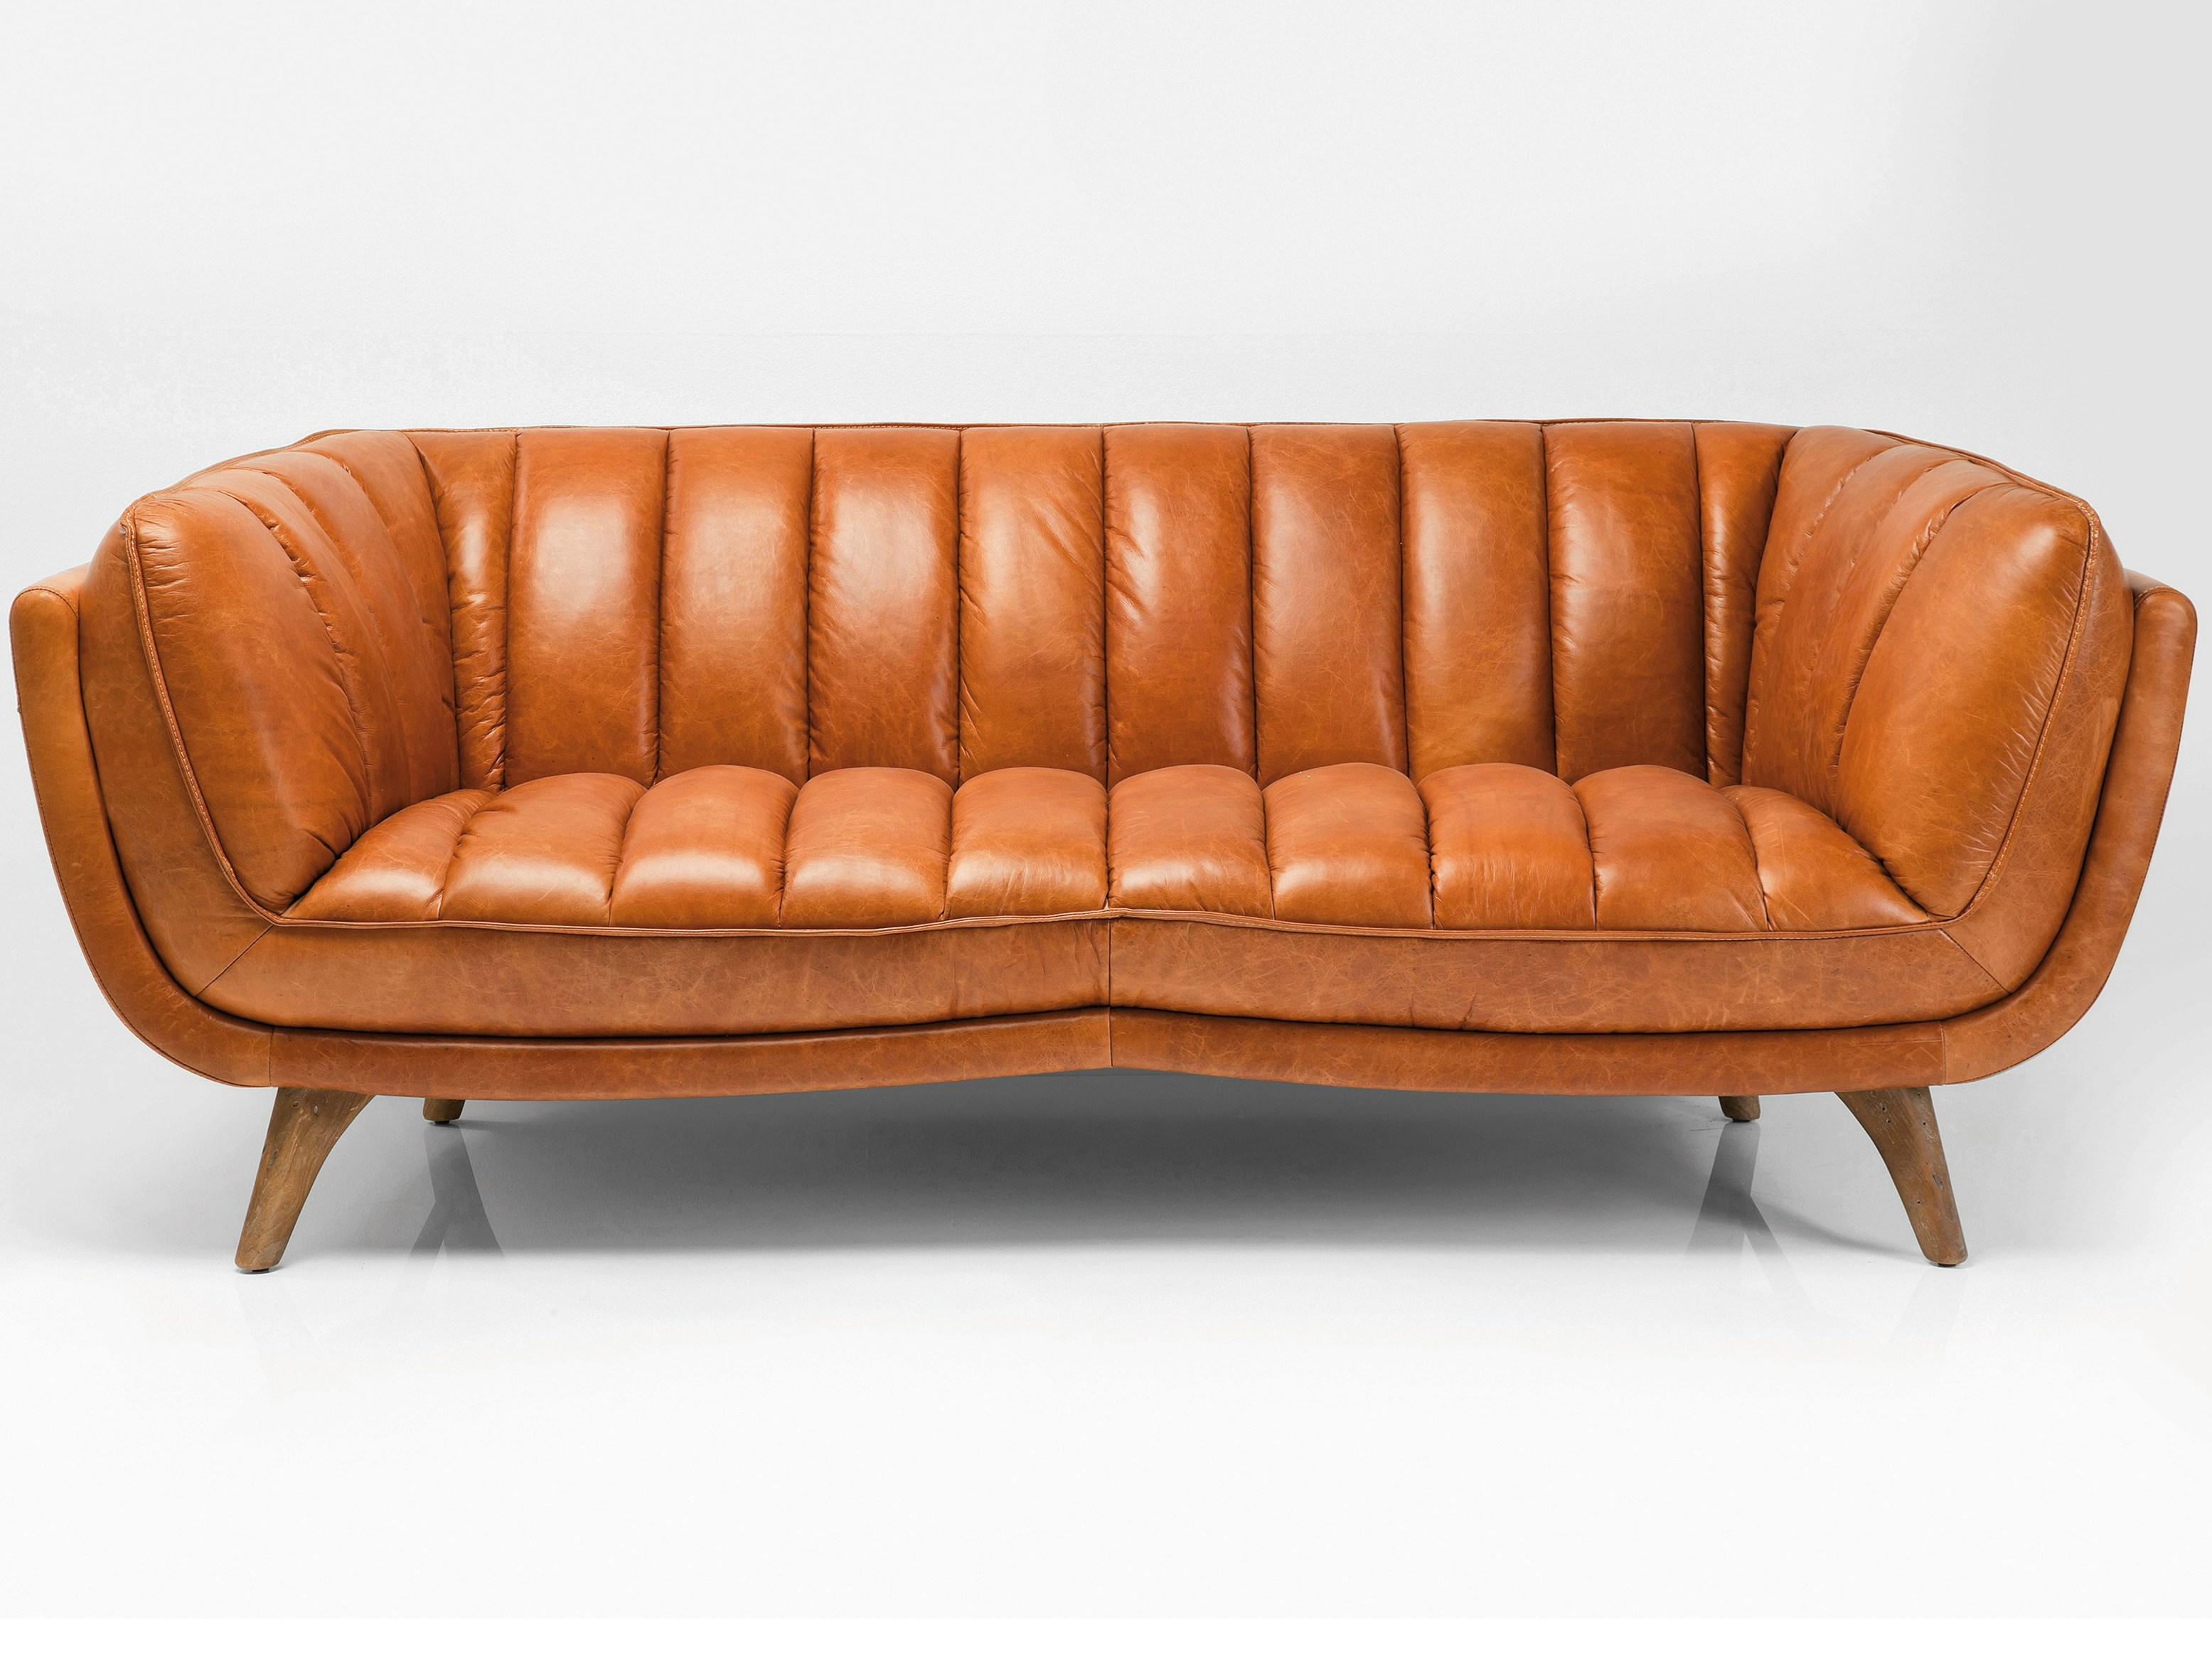 3 Seater Leather Sofa Bruno By Kare Design